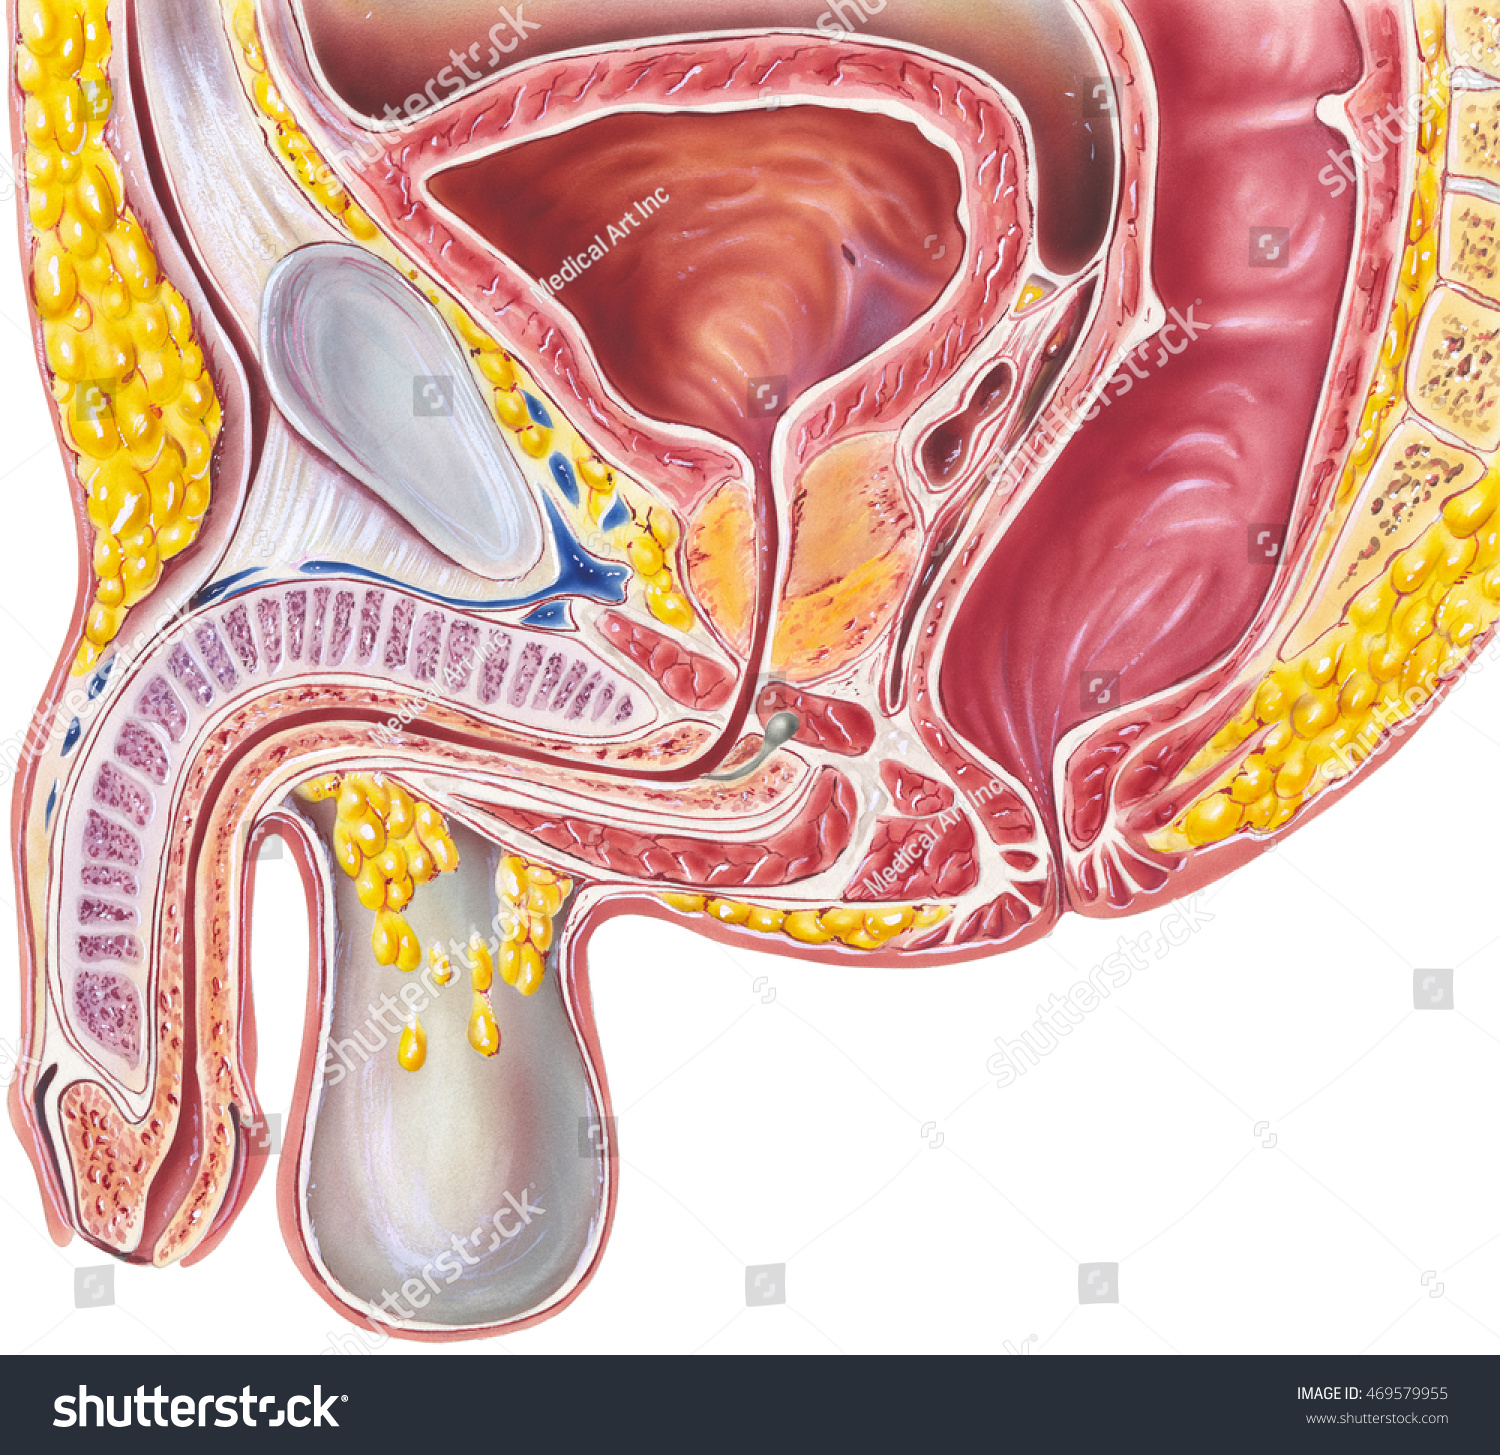 Urinary System Male Cross Section Anatomy Stock Illustration